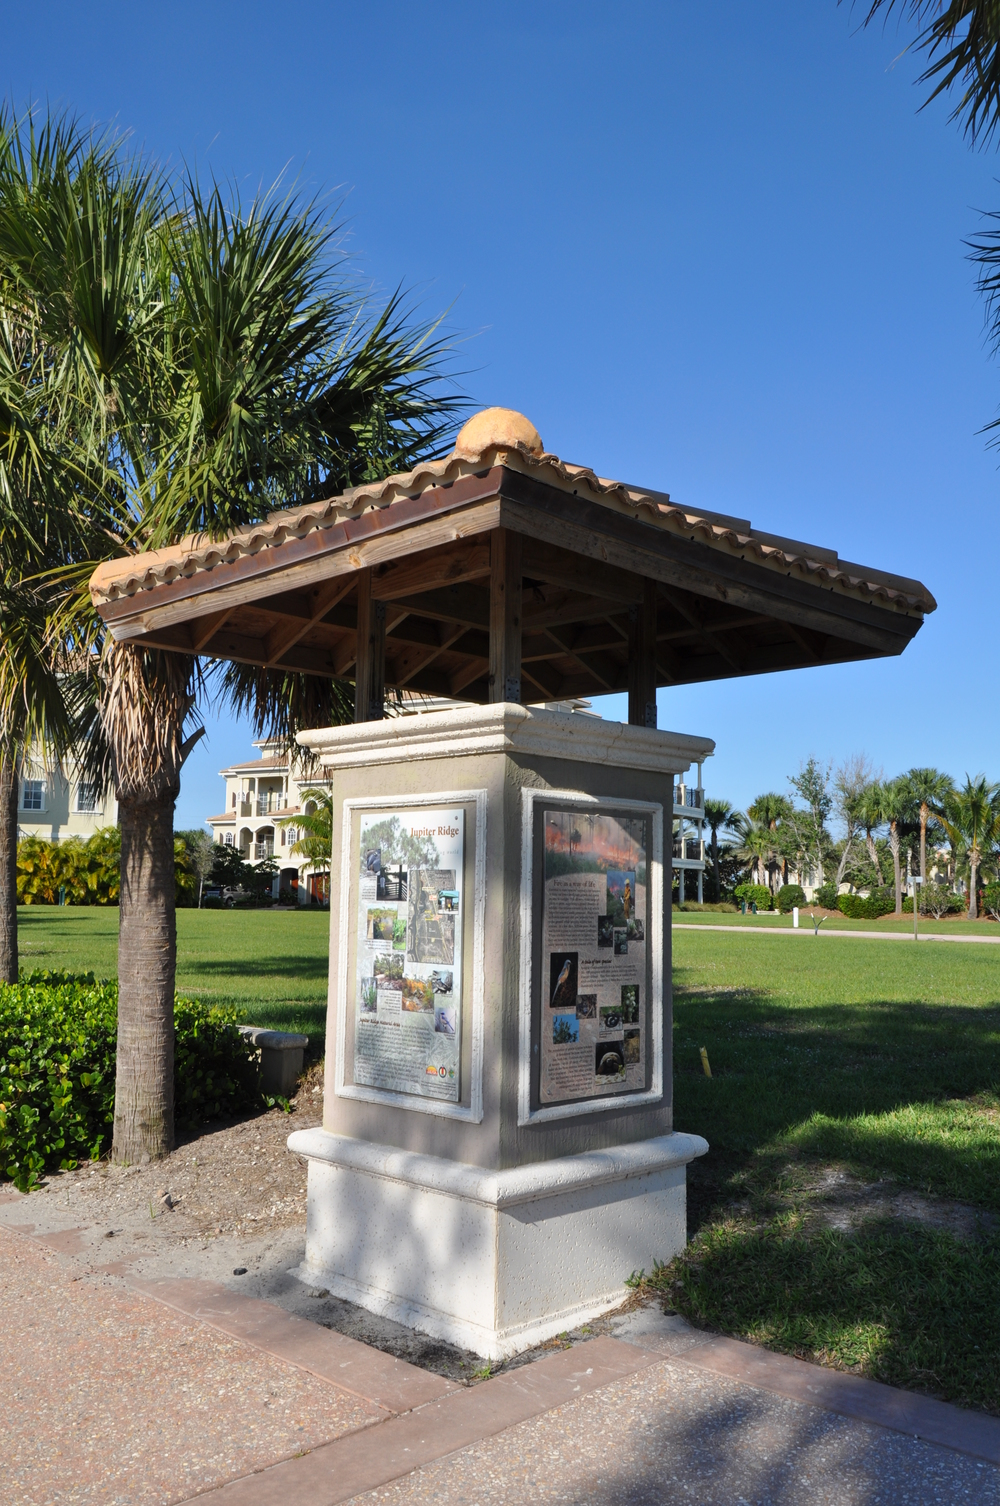 Tierra Del Sol Jupiter Florida Riverwalk Kiosk Interpretive Signage.JPG